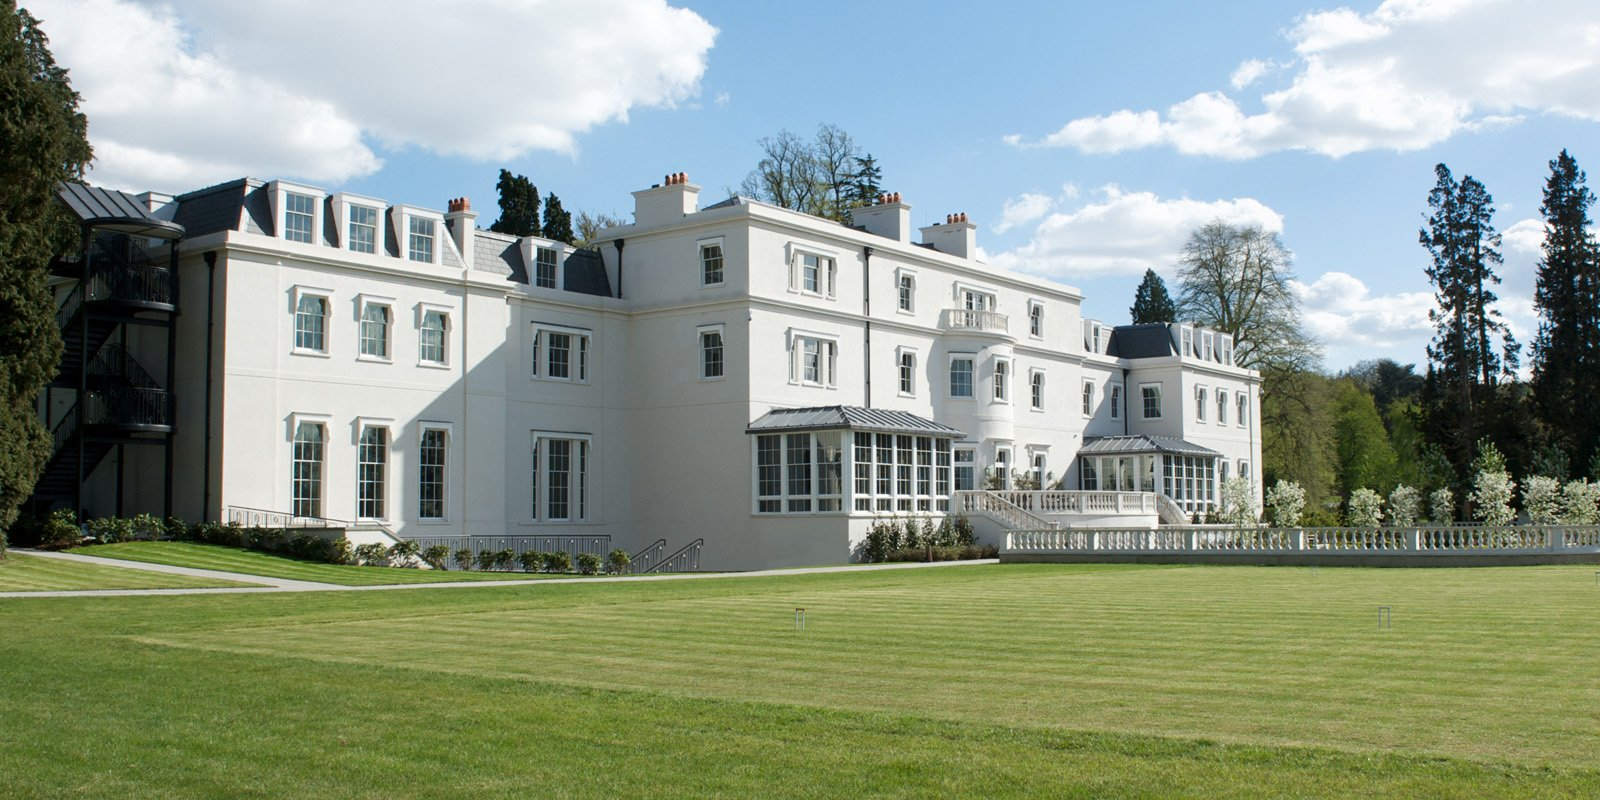 Coworth Park exterior from croquet lawn